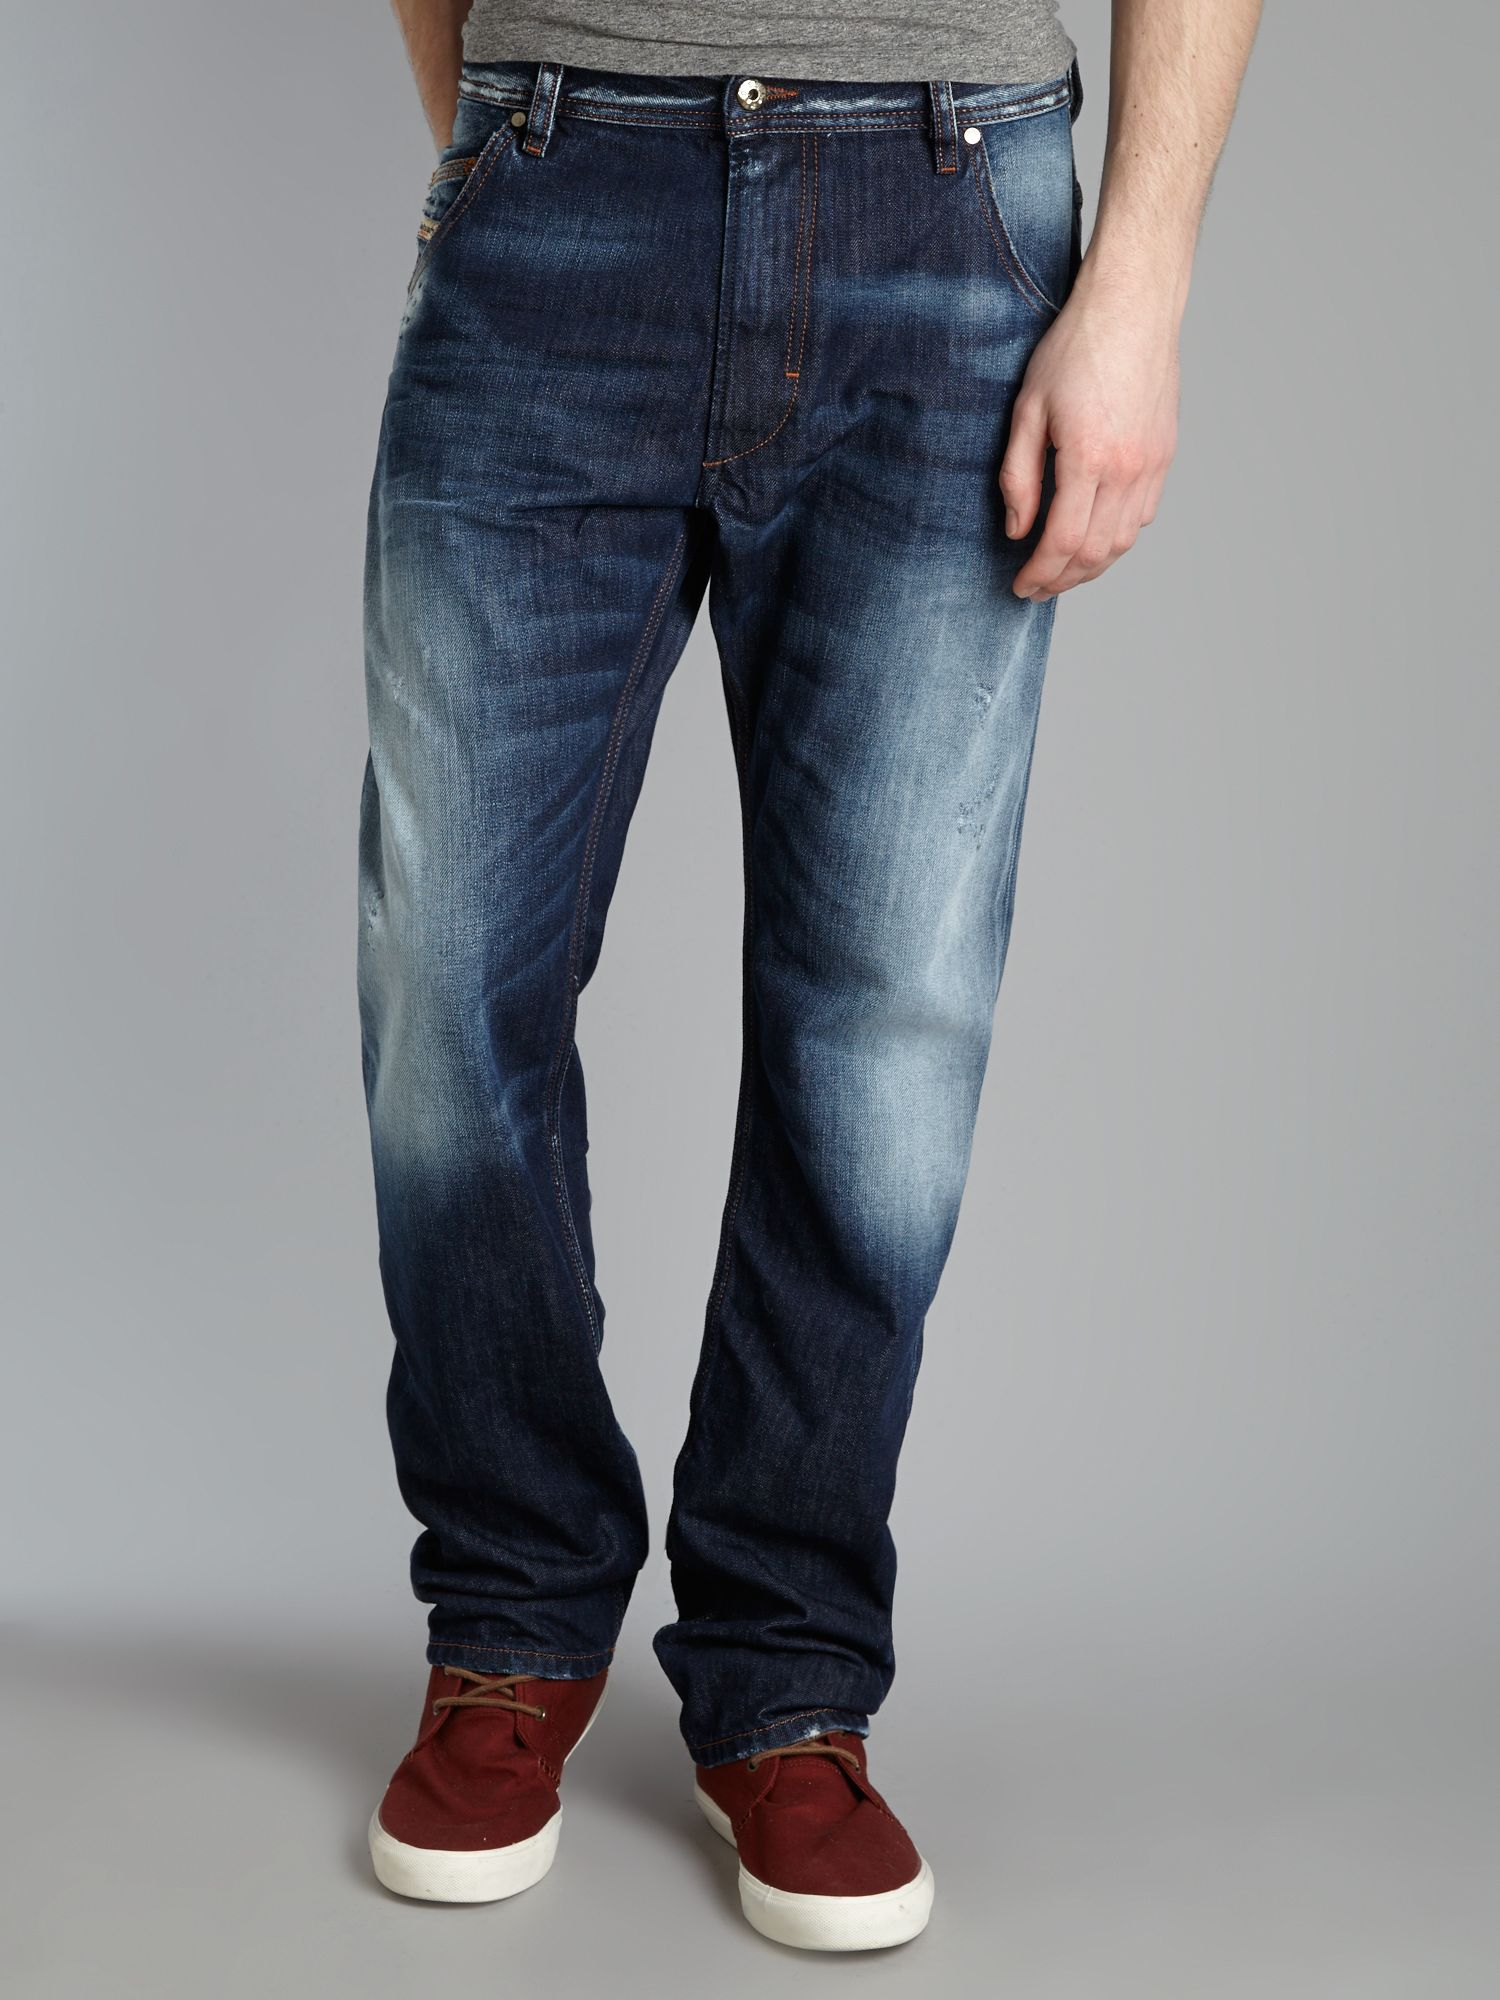 Krooley 810L regular slim carrot fit jeans